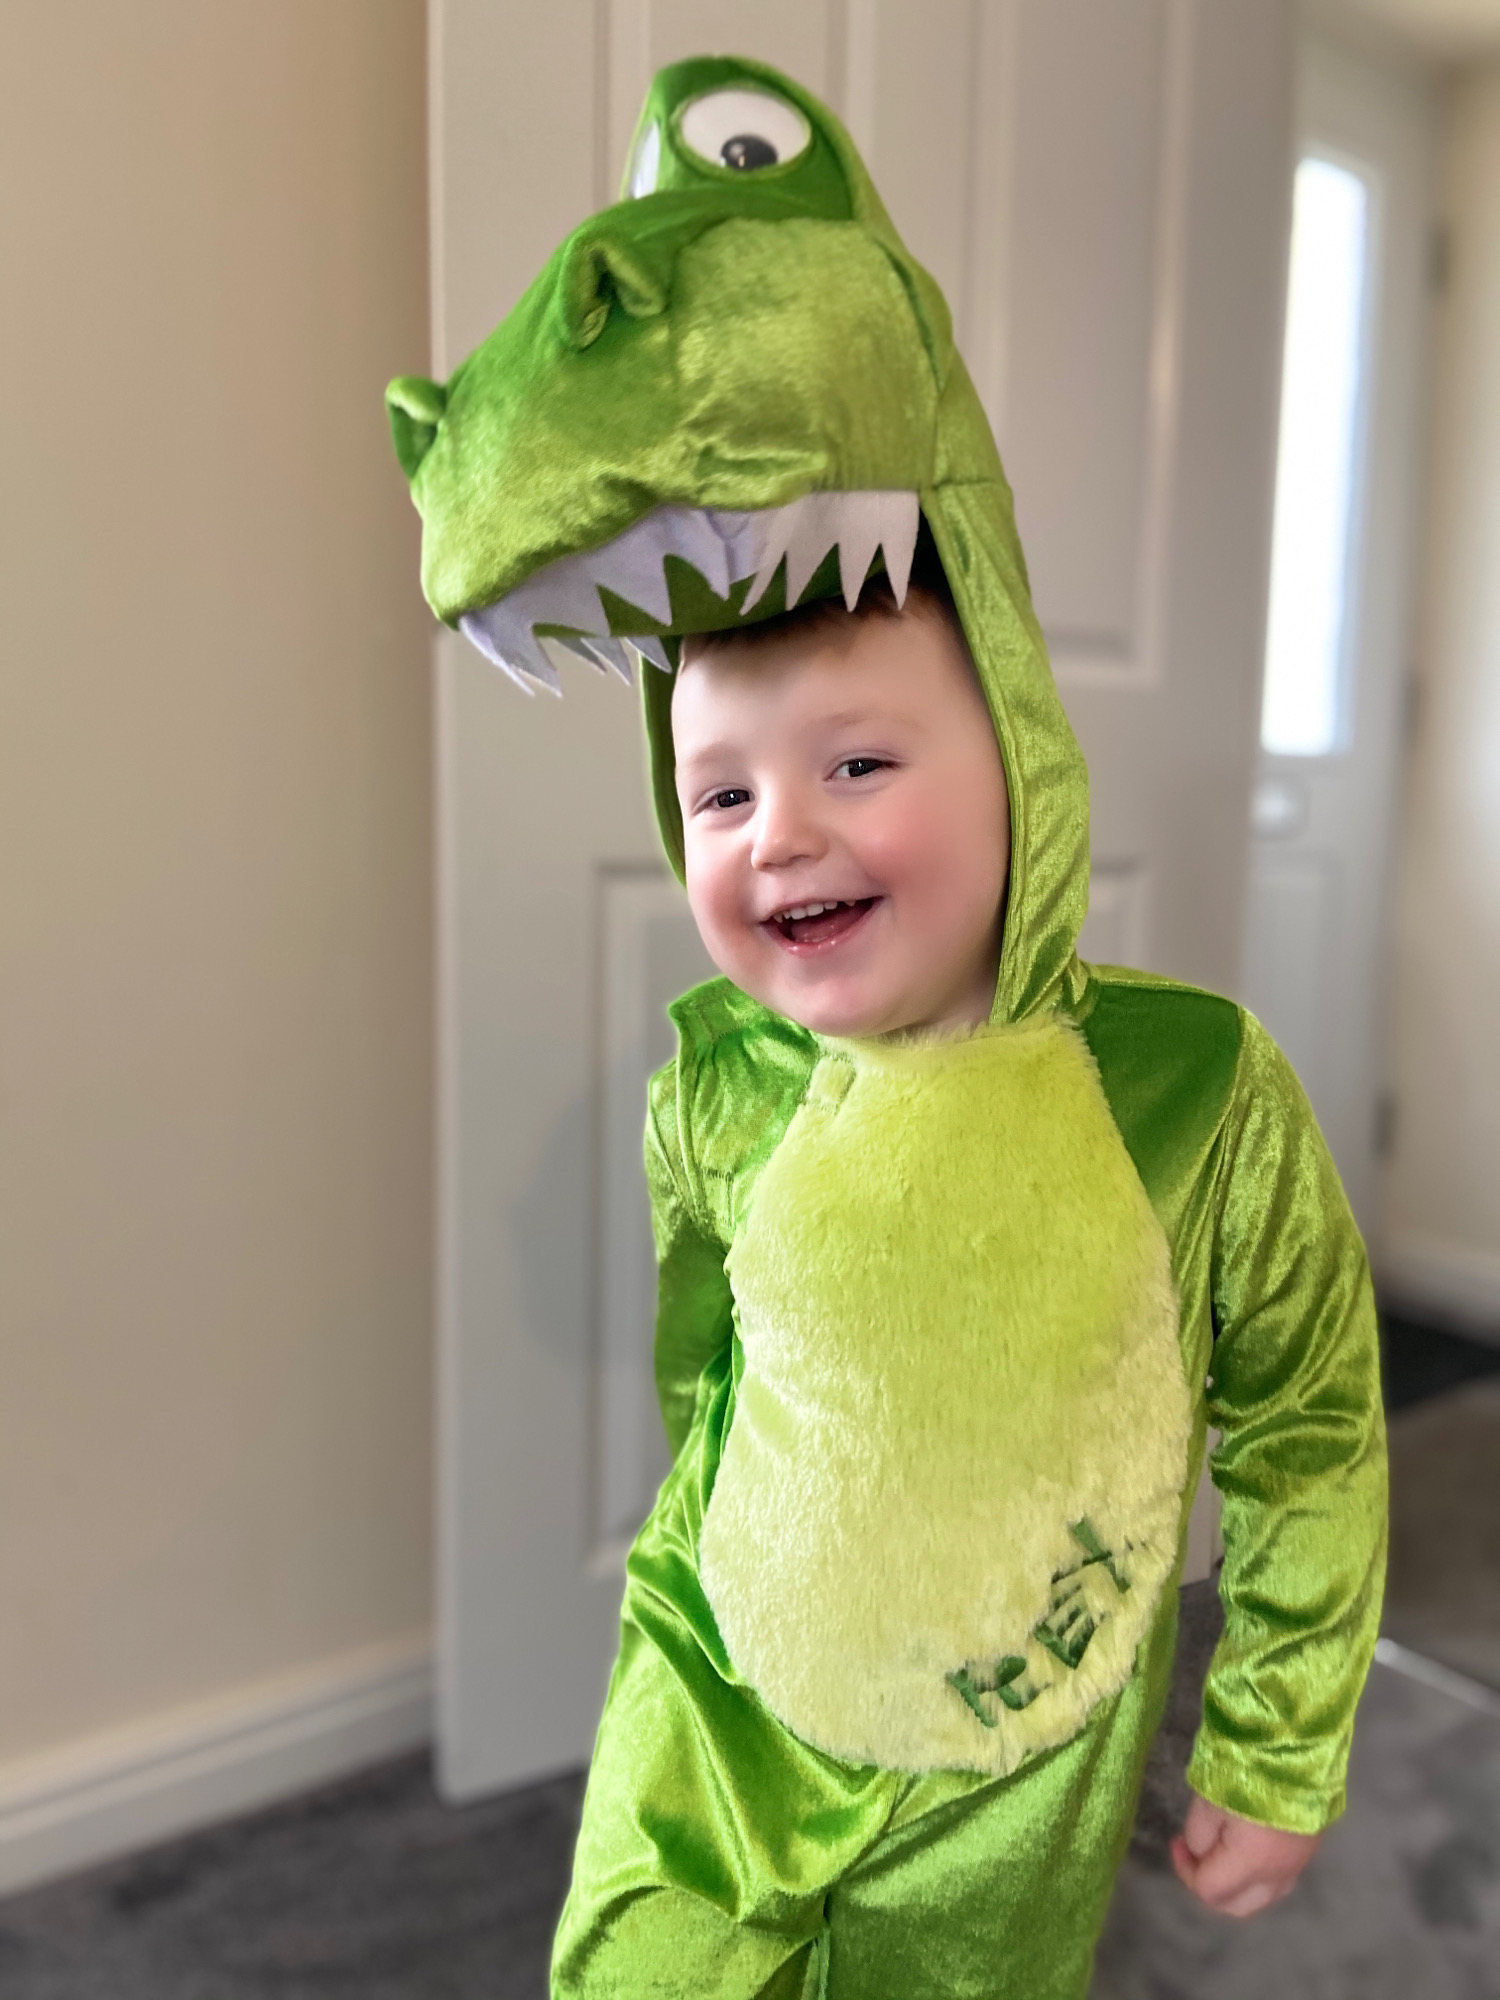 Droitwich Advertiser: Miller age 2 being rex from toy story for world book day 2020